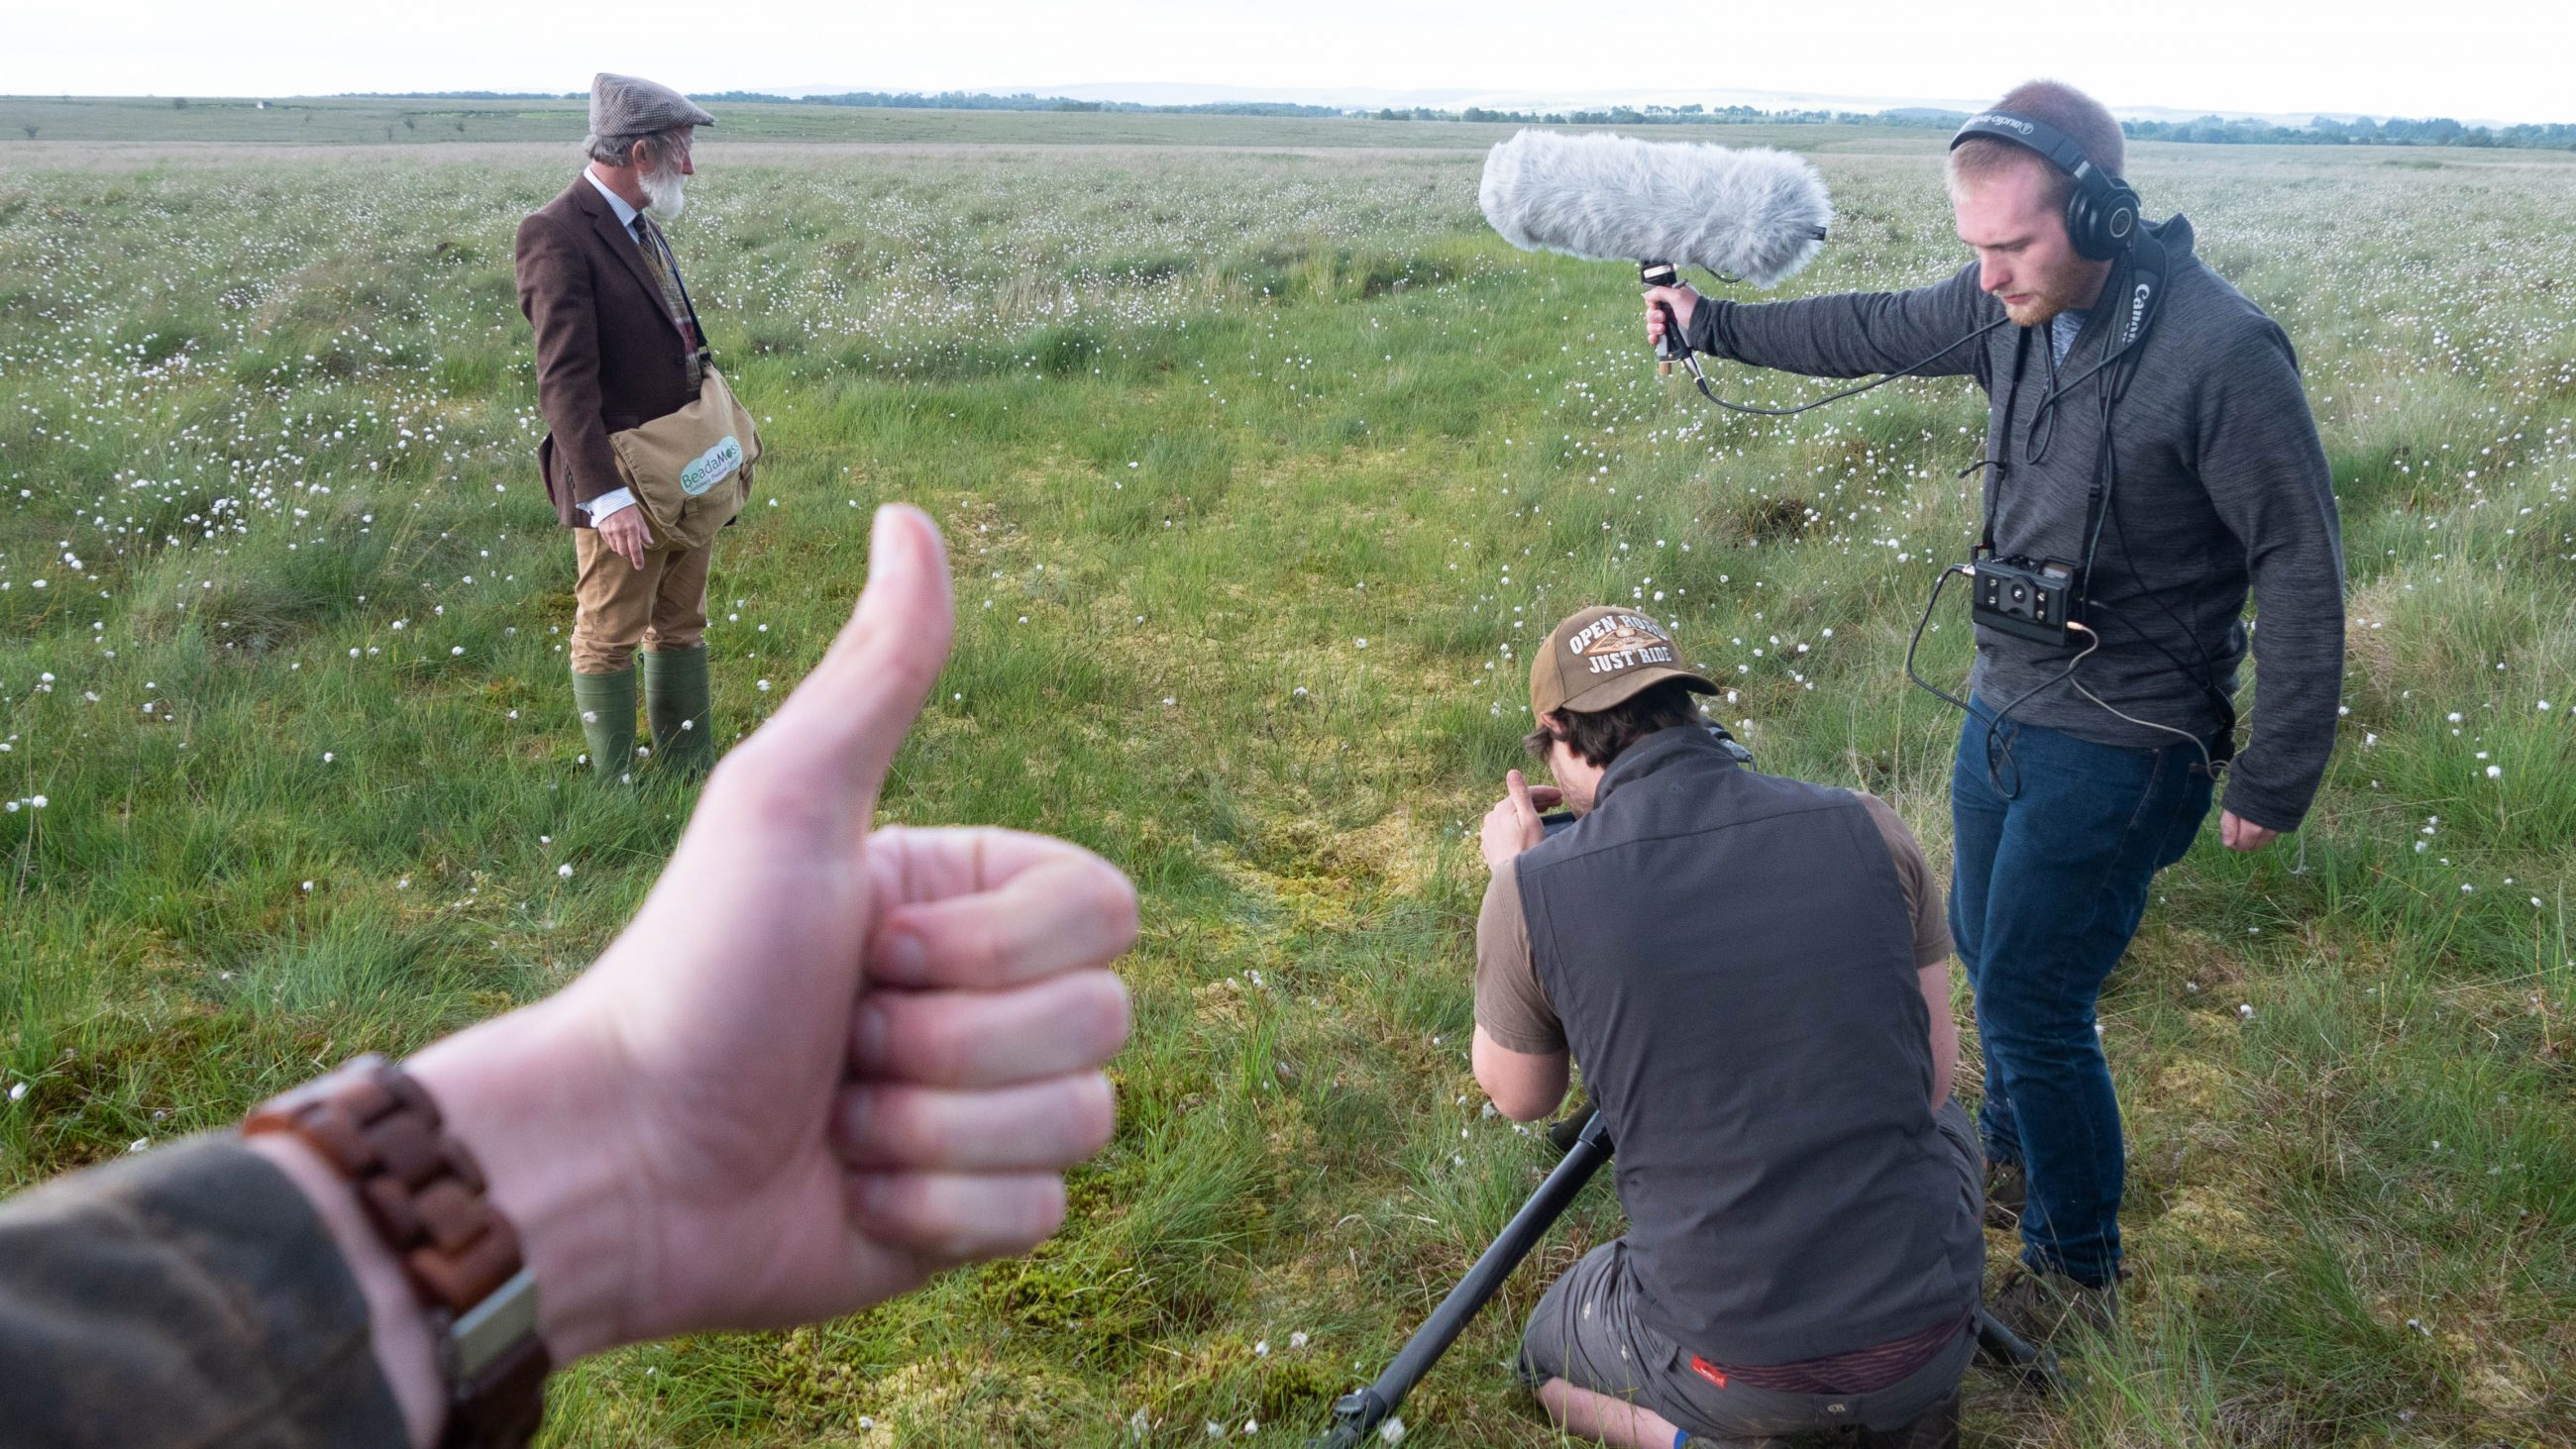 Filming in Fields - Behind the Scenes of Carbon Farmer with Andy Clark, Peter Baumann, Benjamin Sadd and Melvyn Rawlinson